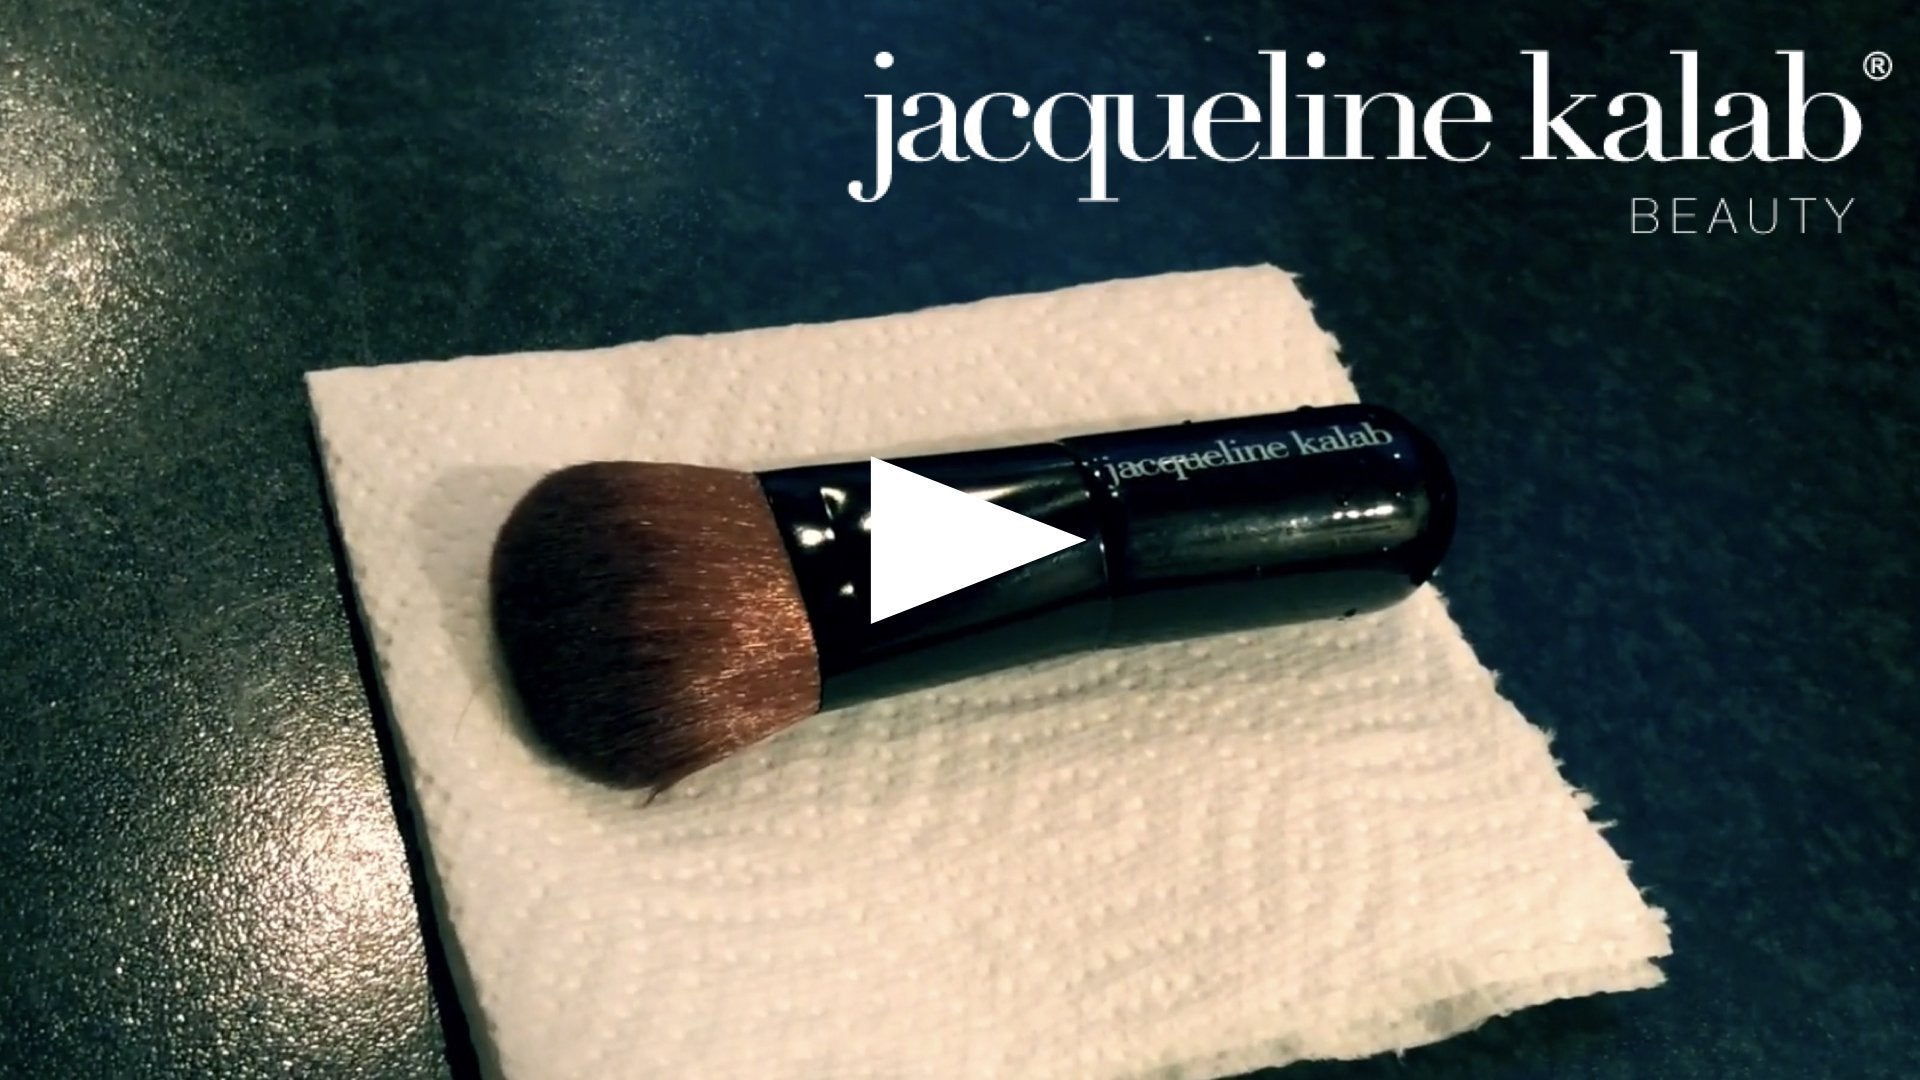 How to Clean Makeup Brushes | Jacqueline Kalab Beauty